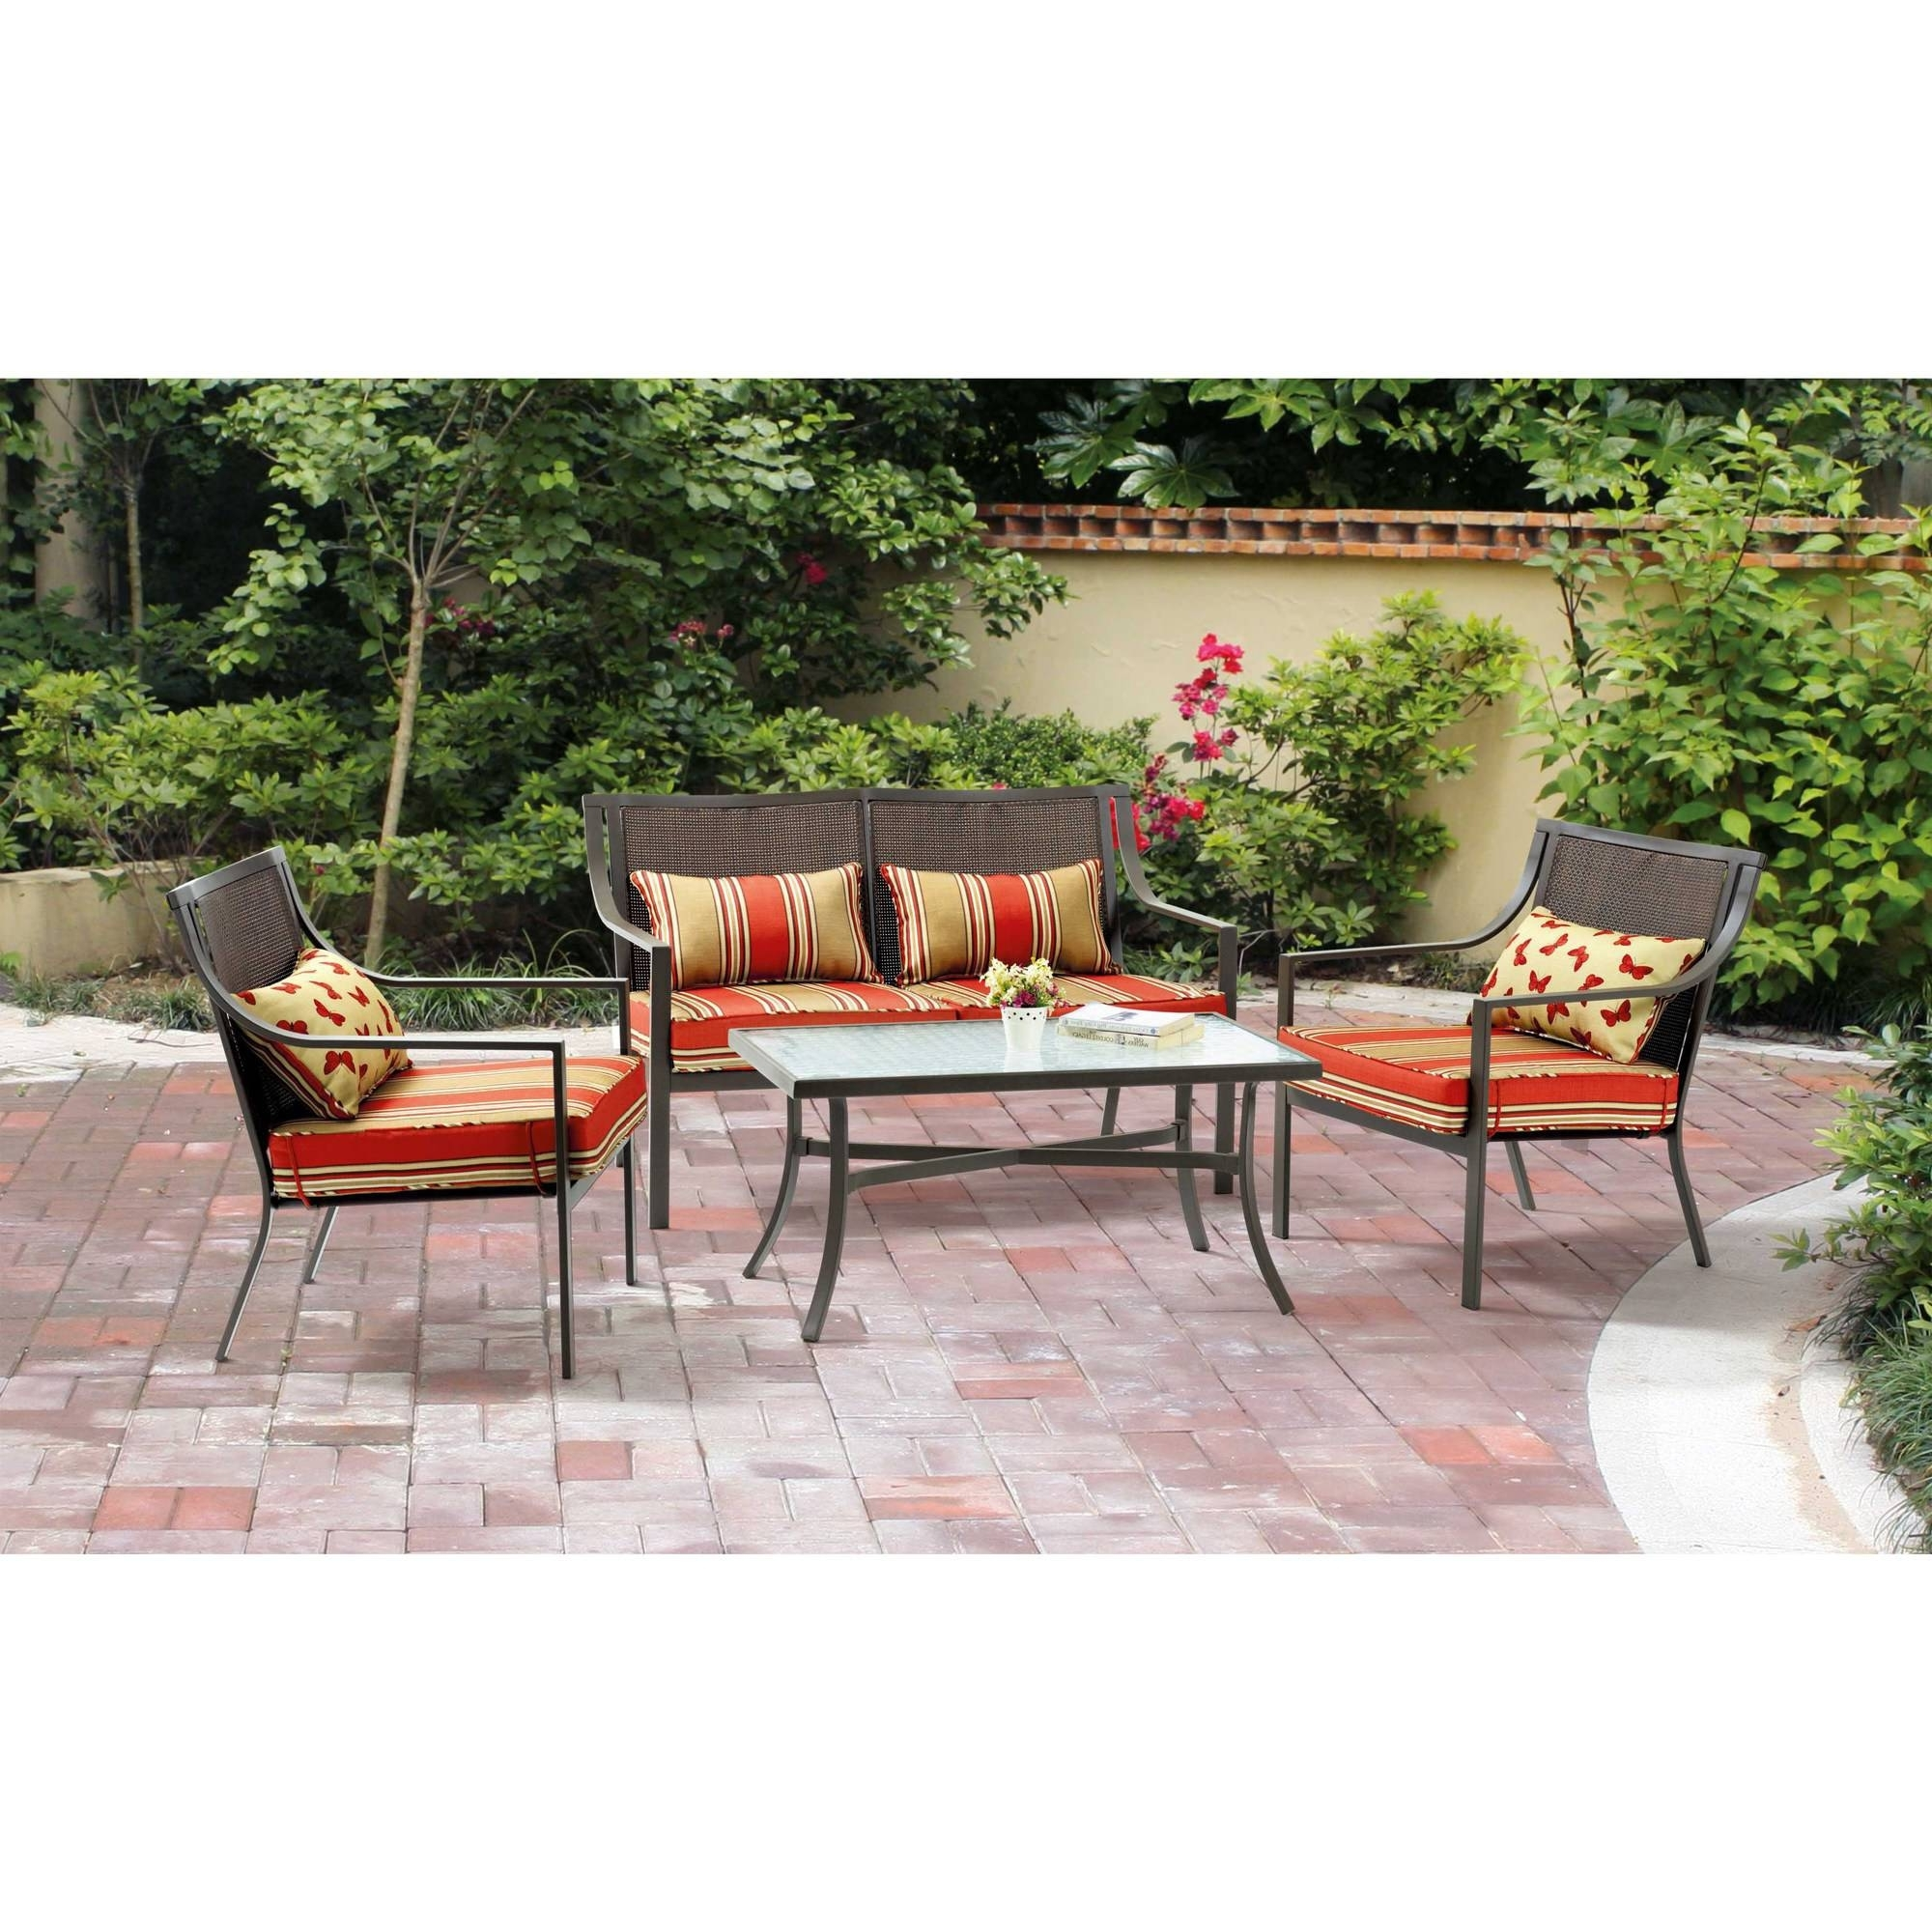 Mainstays Alexandra Square 4 Piece Patio Conversation Set, Seats 4 Intended For Most Popular Patio Sectional Conversation Sets (View 15 of 20)